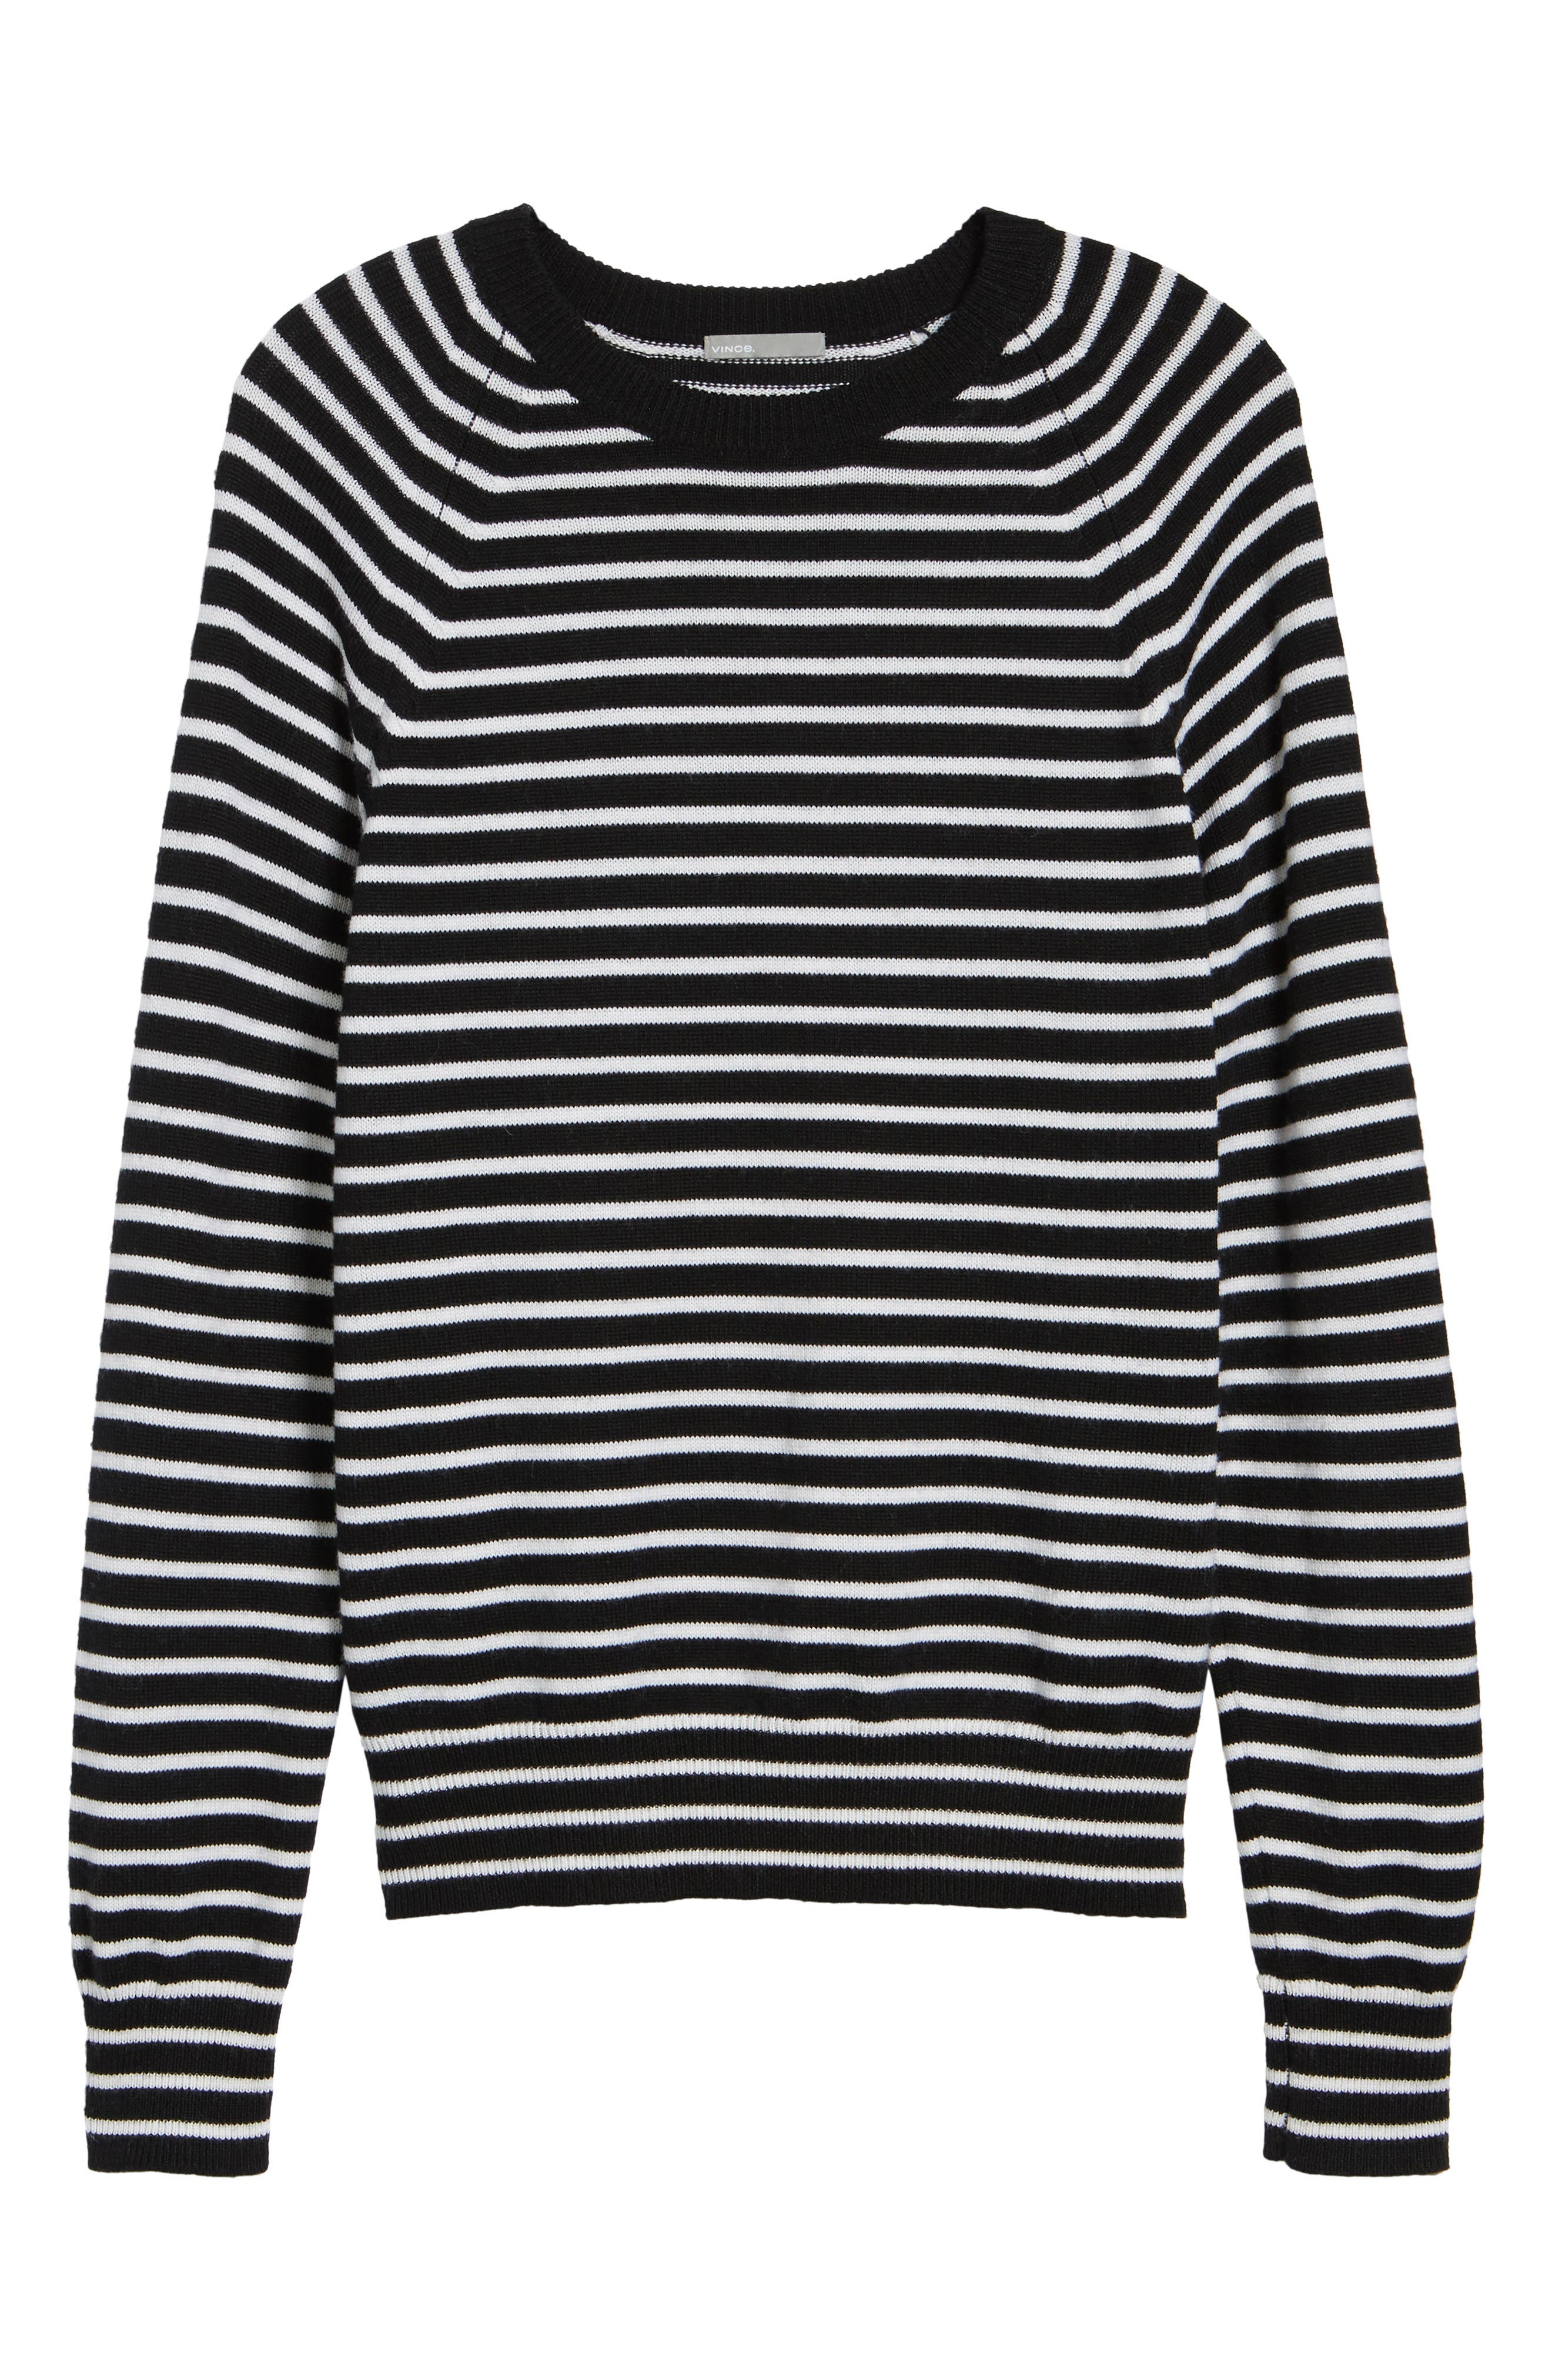 Regular Fit Striped Wool Sweater,                             Alternate thumbnail 6, color,                             Black/ Stormy White